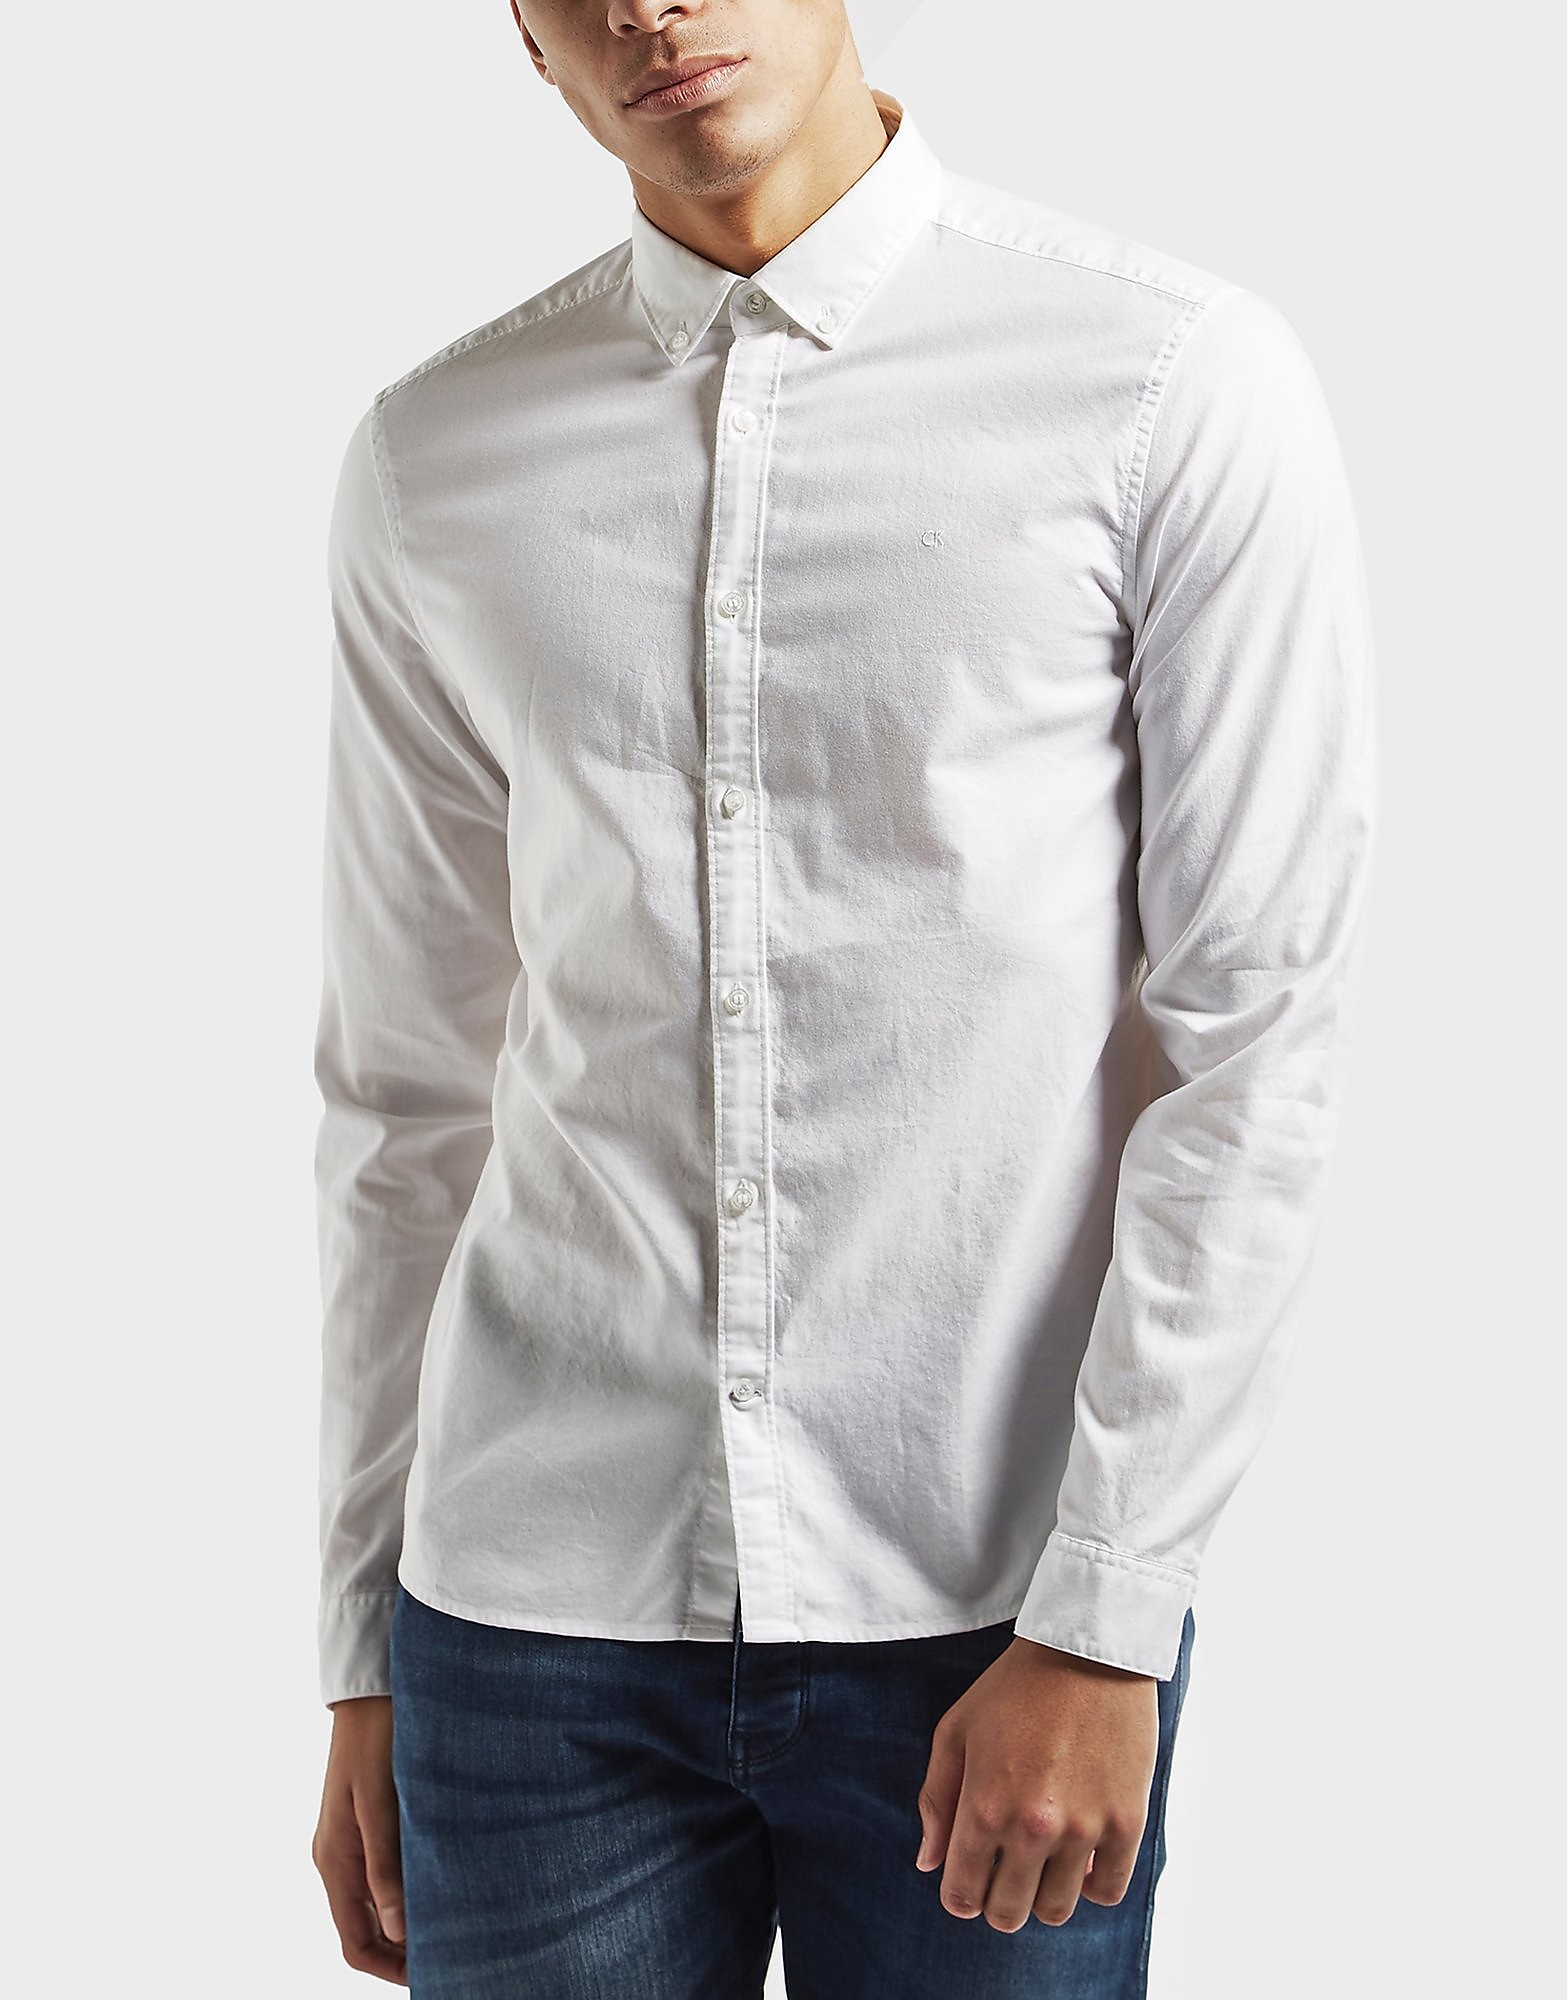 Calvin Klein Oxford Long Sleeve Shirt